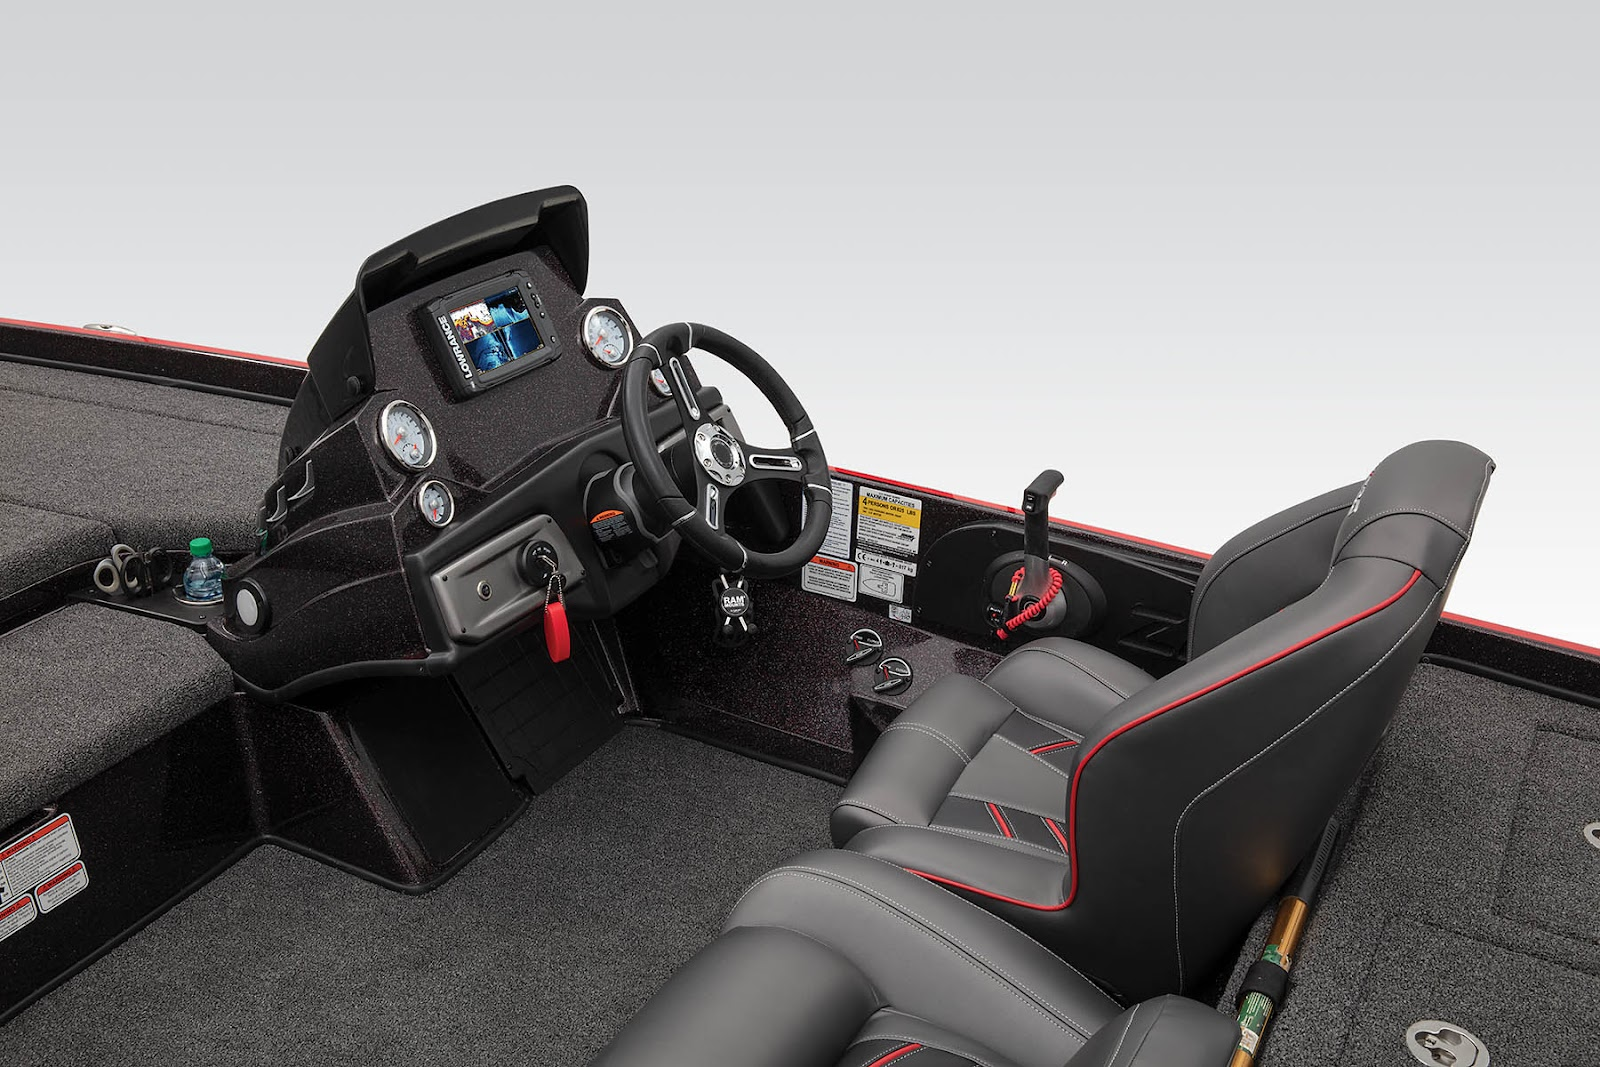 The cockpit of a NITRO ?amp;reg; Z21, 2020 model shown in this file photo.